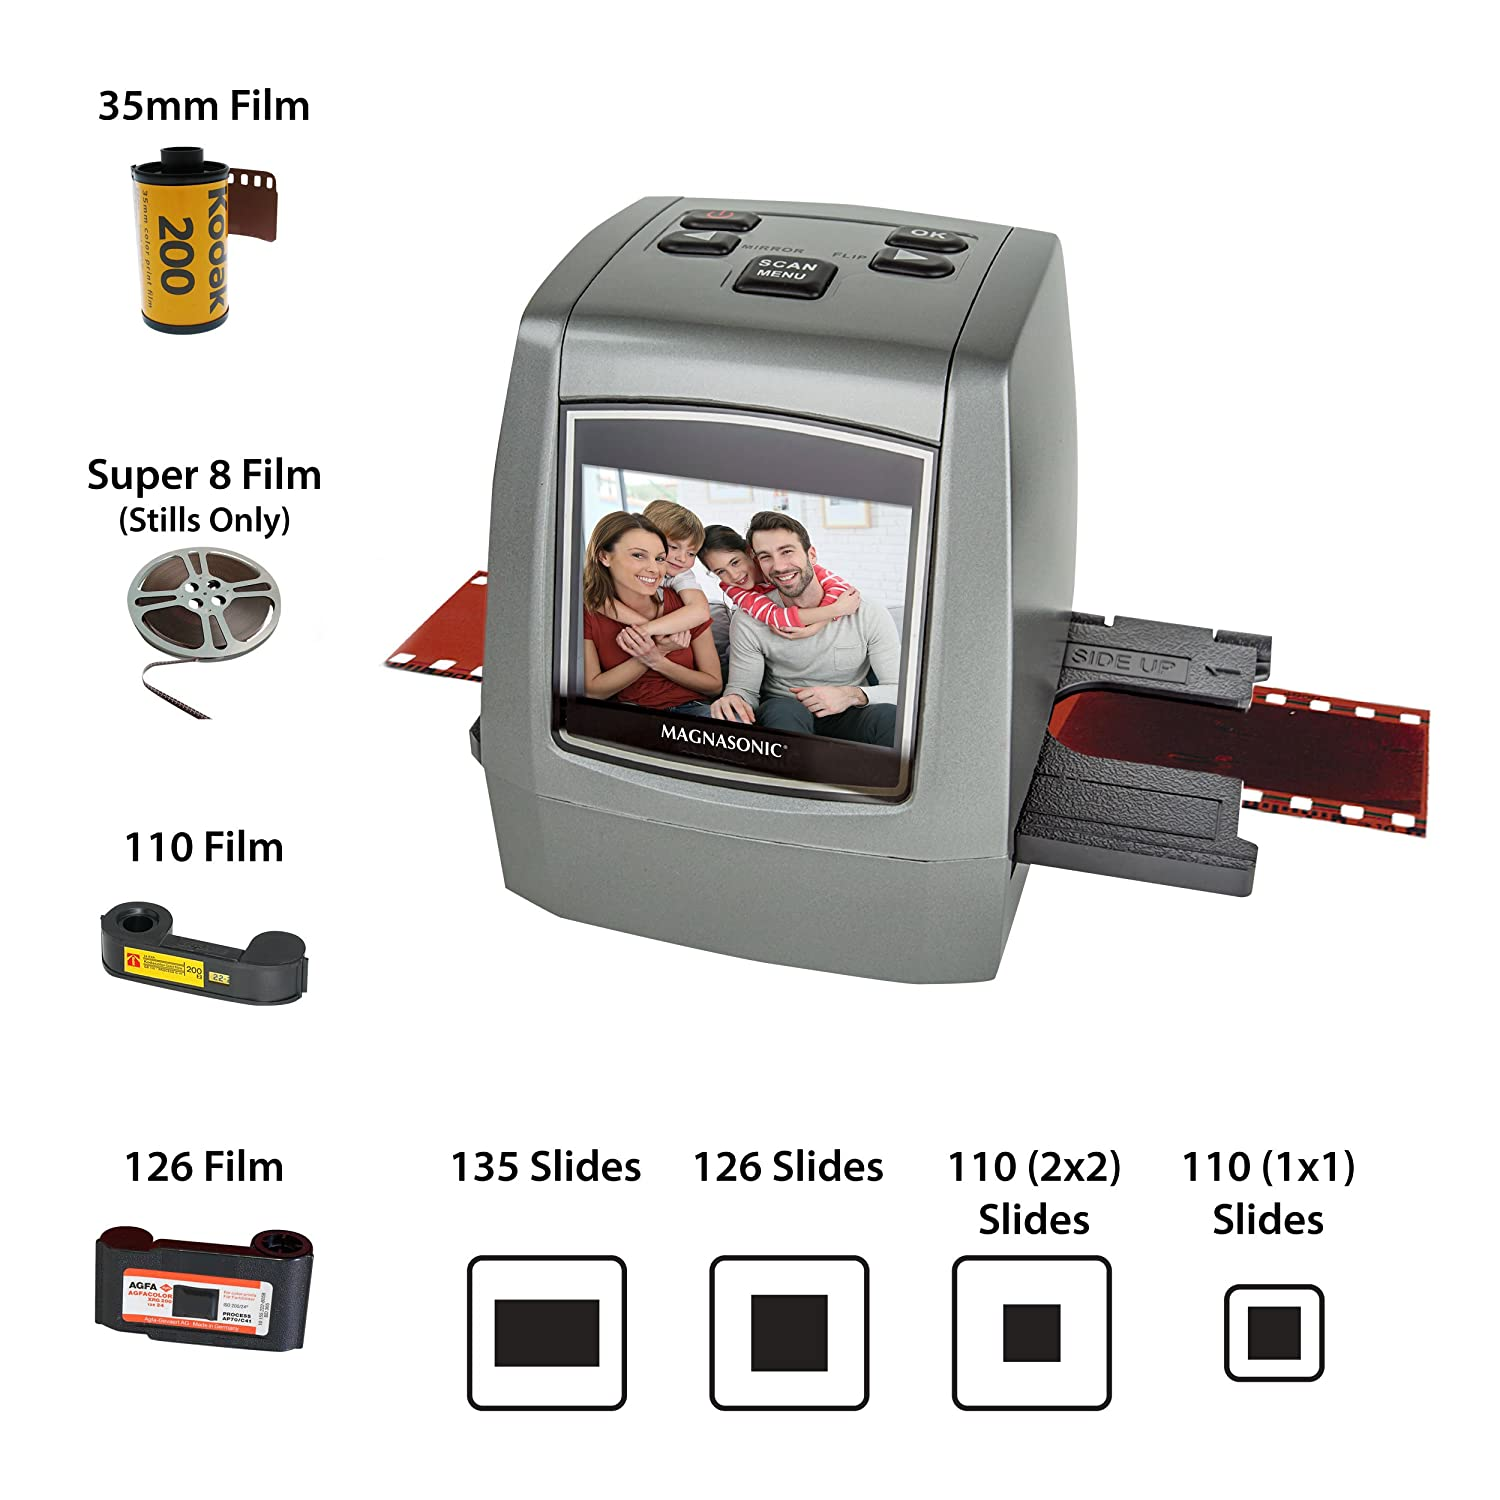 Magnasonic All-In-One High Resolution 22MP Film Scanner, Converts 126KPK/135/110/Super 8 Films, Slides, Negatives into Digital Photos, Vibrant 2.4 LCD Screen, Impressive 128MB Built-In Memory Vibrant 2.4 LCD Screen FS50